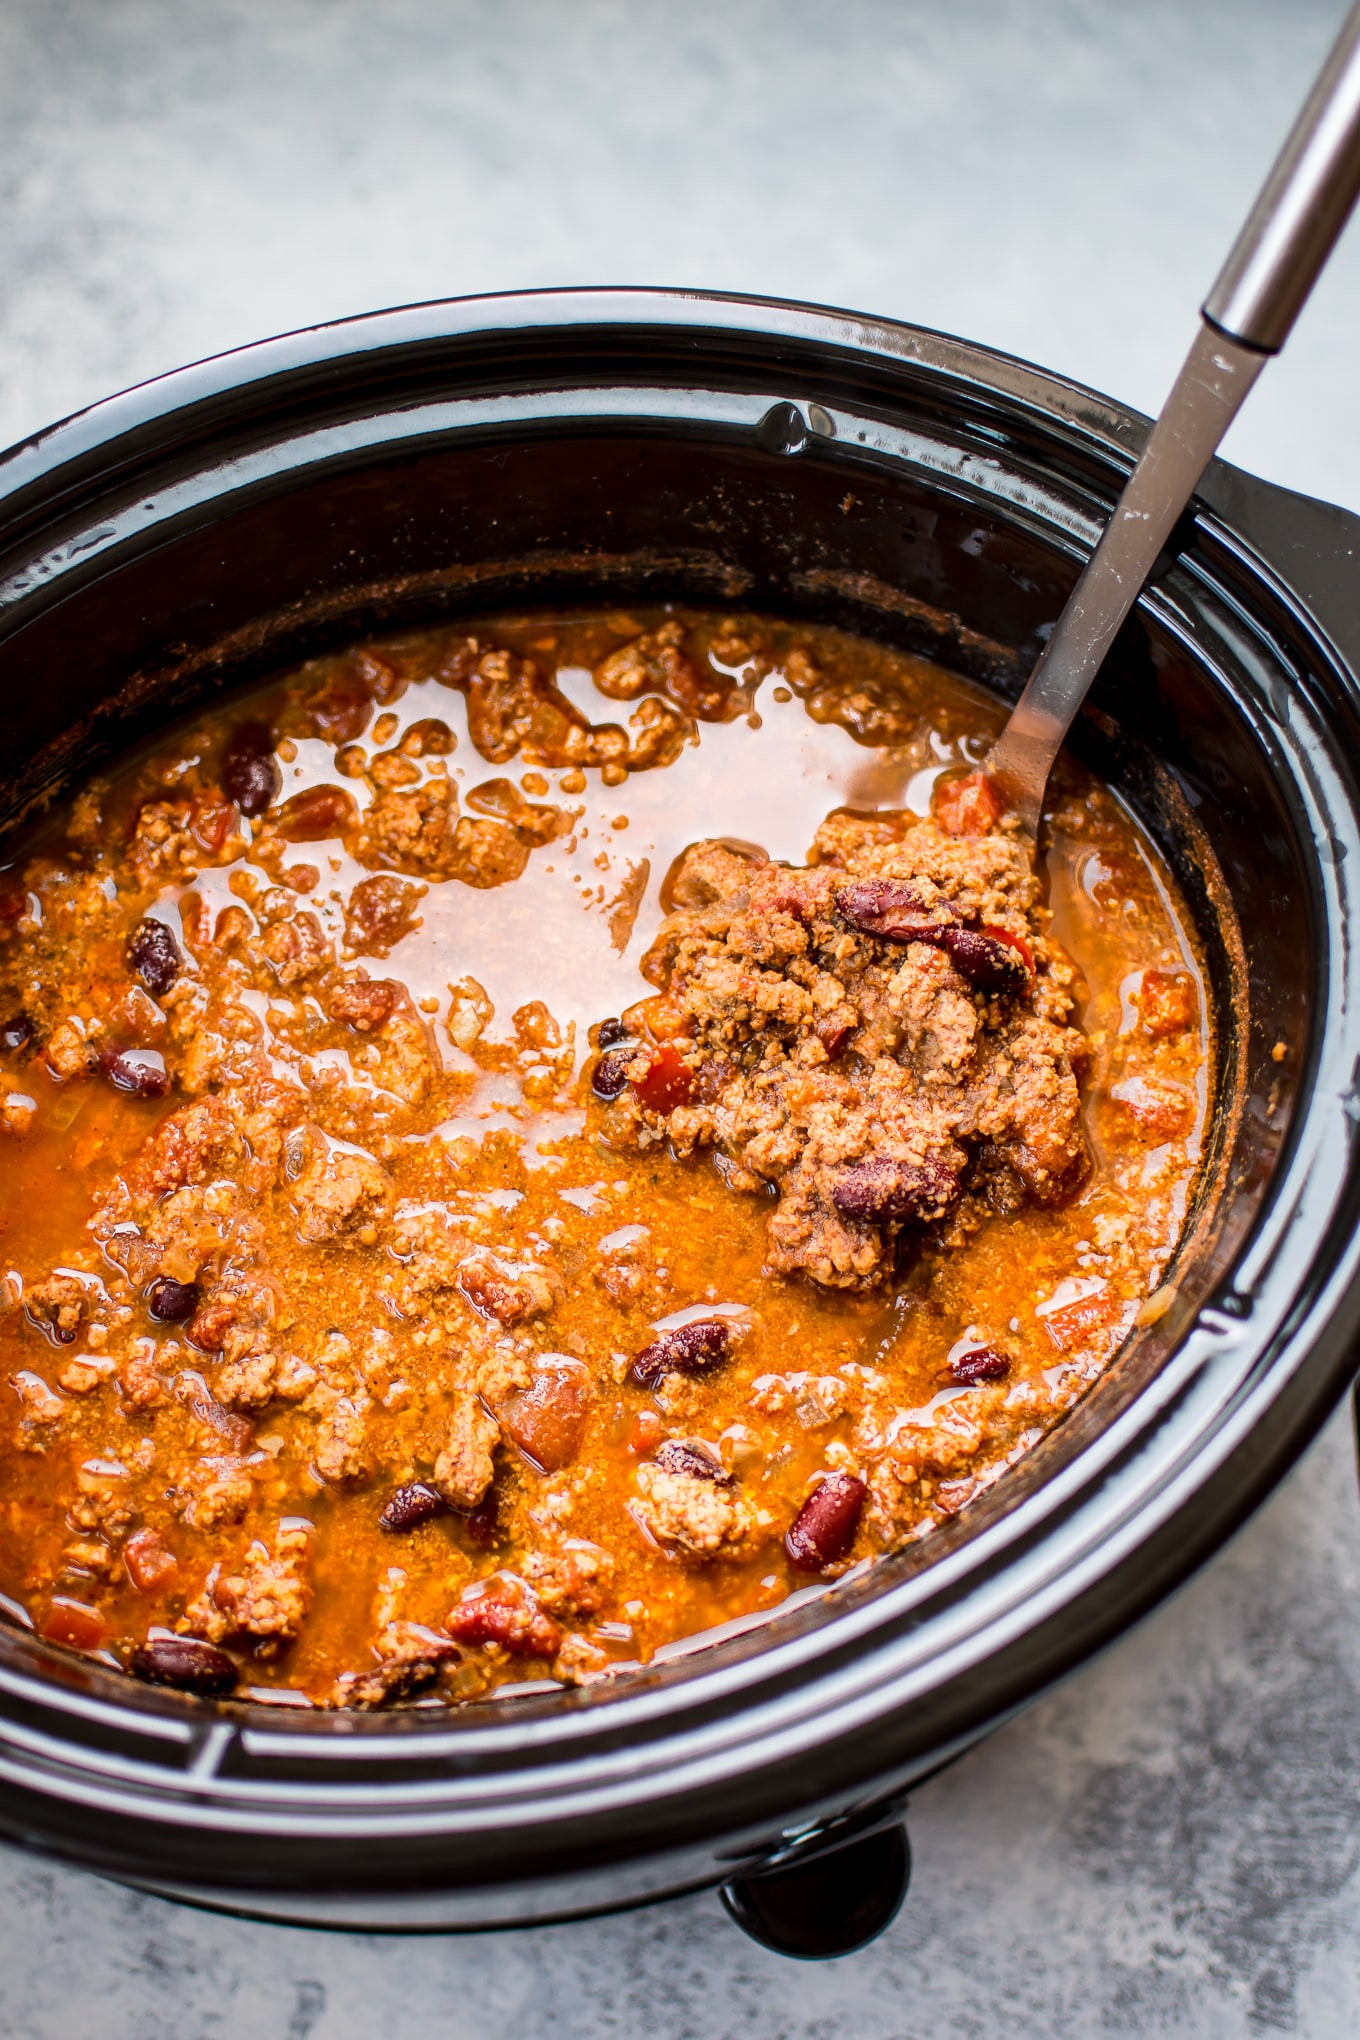 Crockpot Turkey Chili  Crockpot Turkey Chili • Salt & Lavender